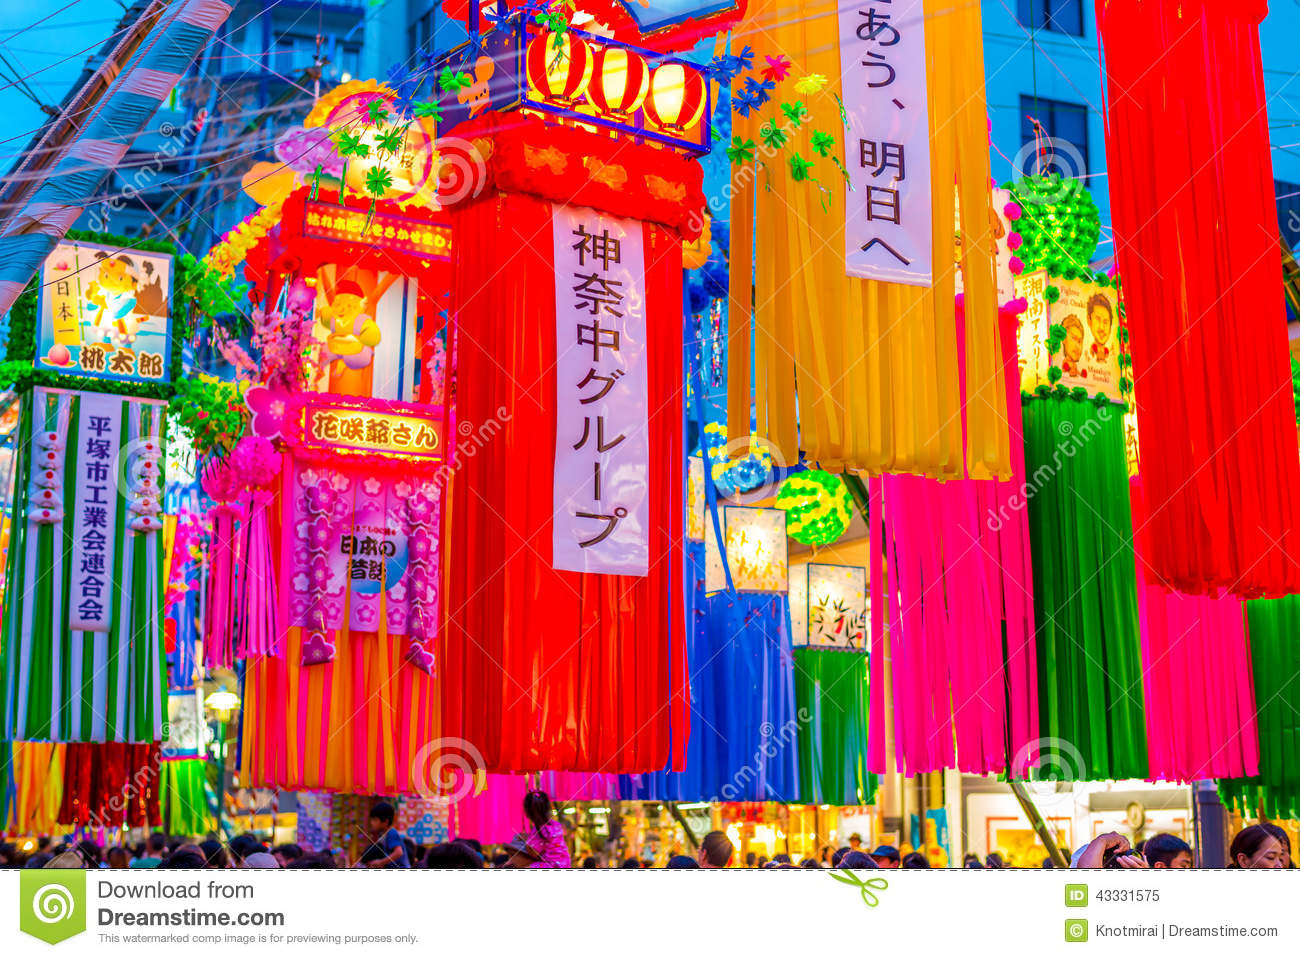 japanese food culture and the tanabata Tanabata (july 7) is an annual festival during which the stars vega and altair meet in the sky japanese people celebrate it with seasonal food dishes and sake or.